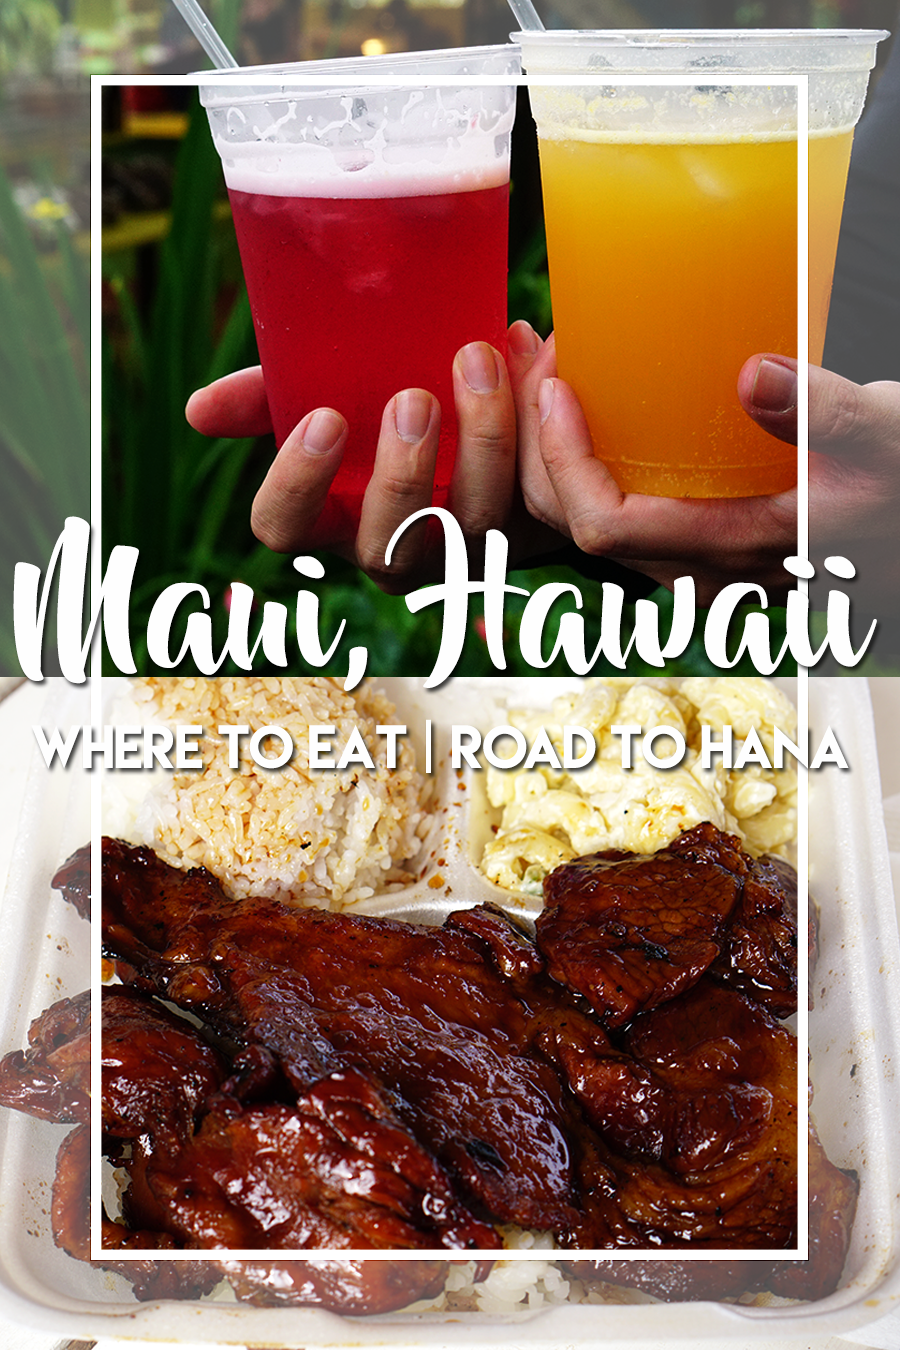 Restaurants are scarce on Road to Hana. There are several food trucks and street food along the way.    After hiking at Pipiwai Trail and taking a dip in the Seven Sacred Pools (Ohe'o Gulch), just a couple miles out of Haleakala National Park we indulged ourselves with some Braddah Huts BBQ Grill. The BBQ pork and chicken dishes with a side of mac salad were delicious!